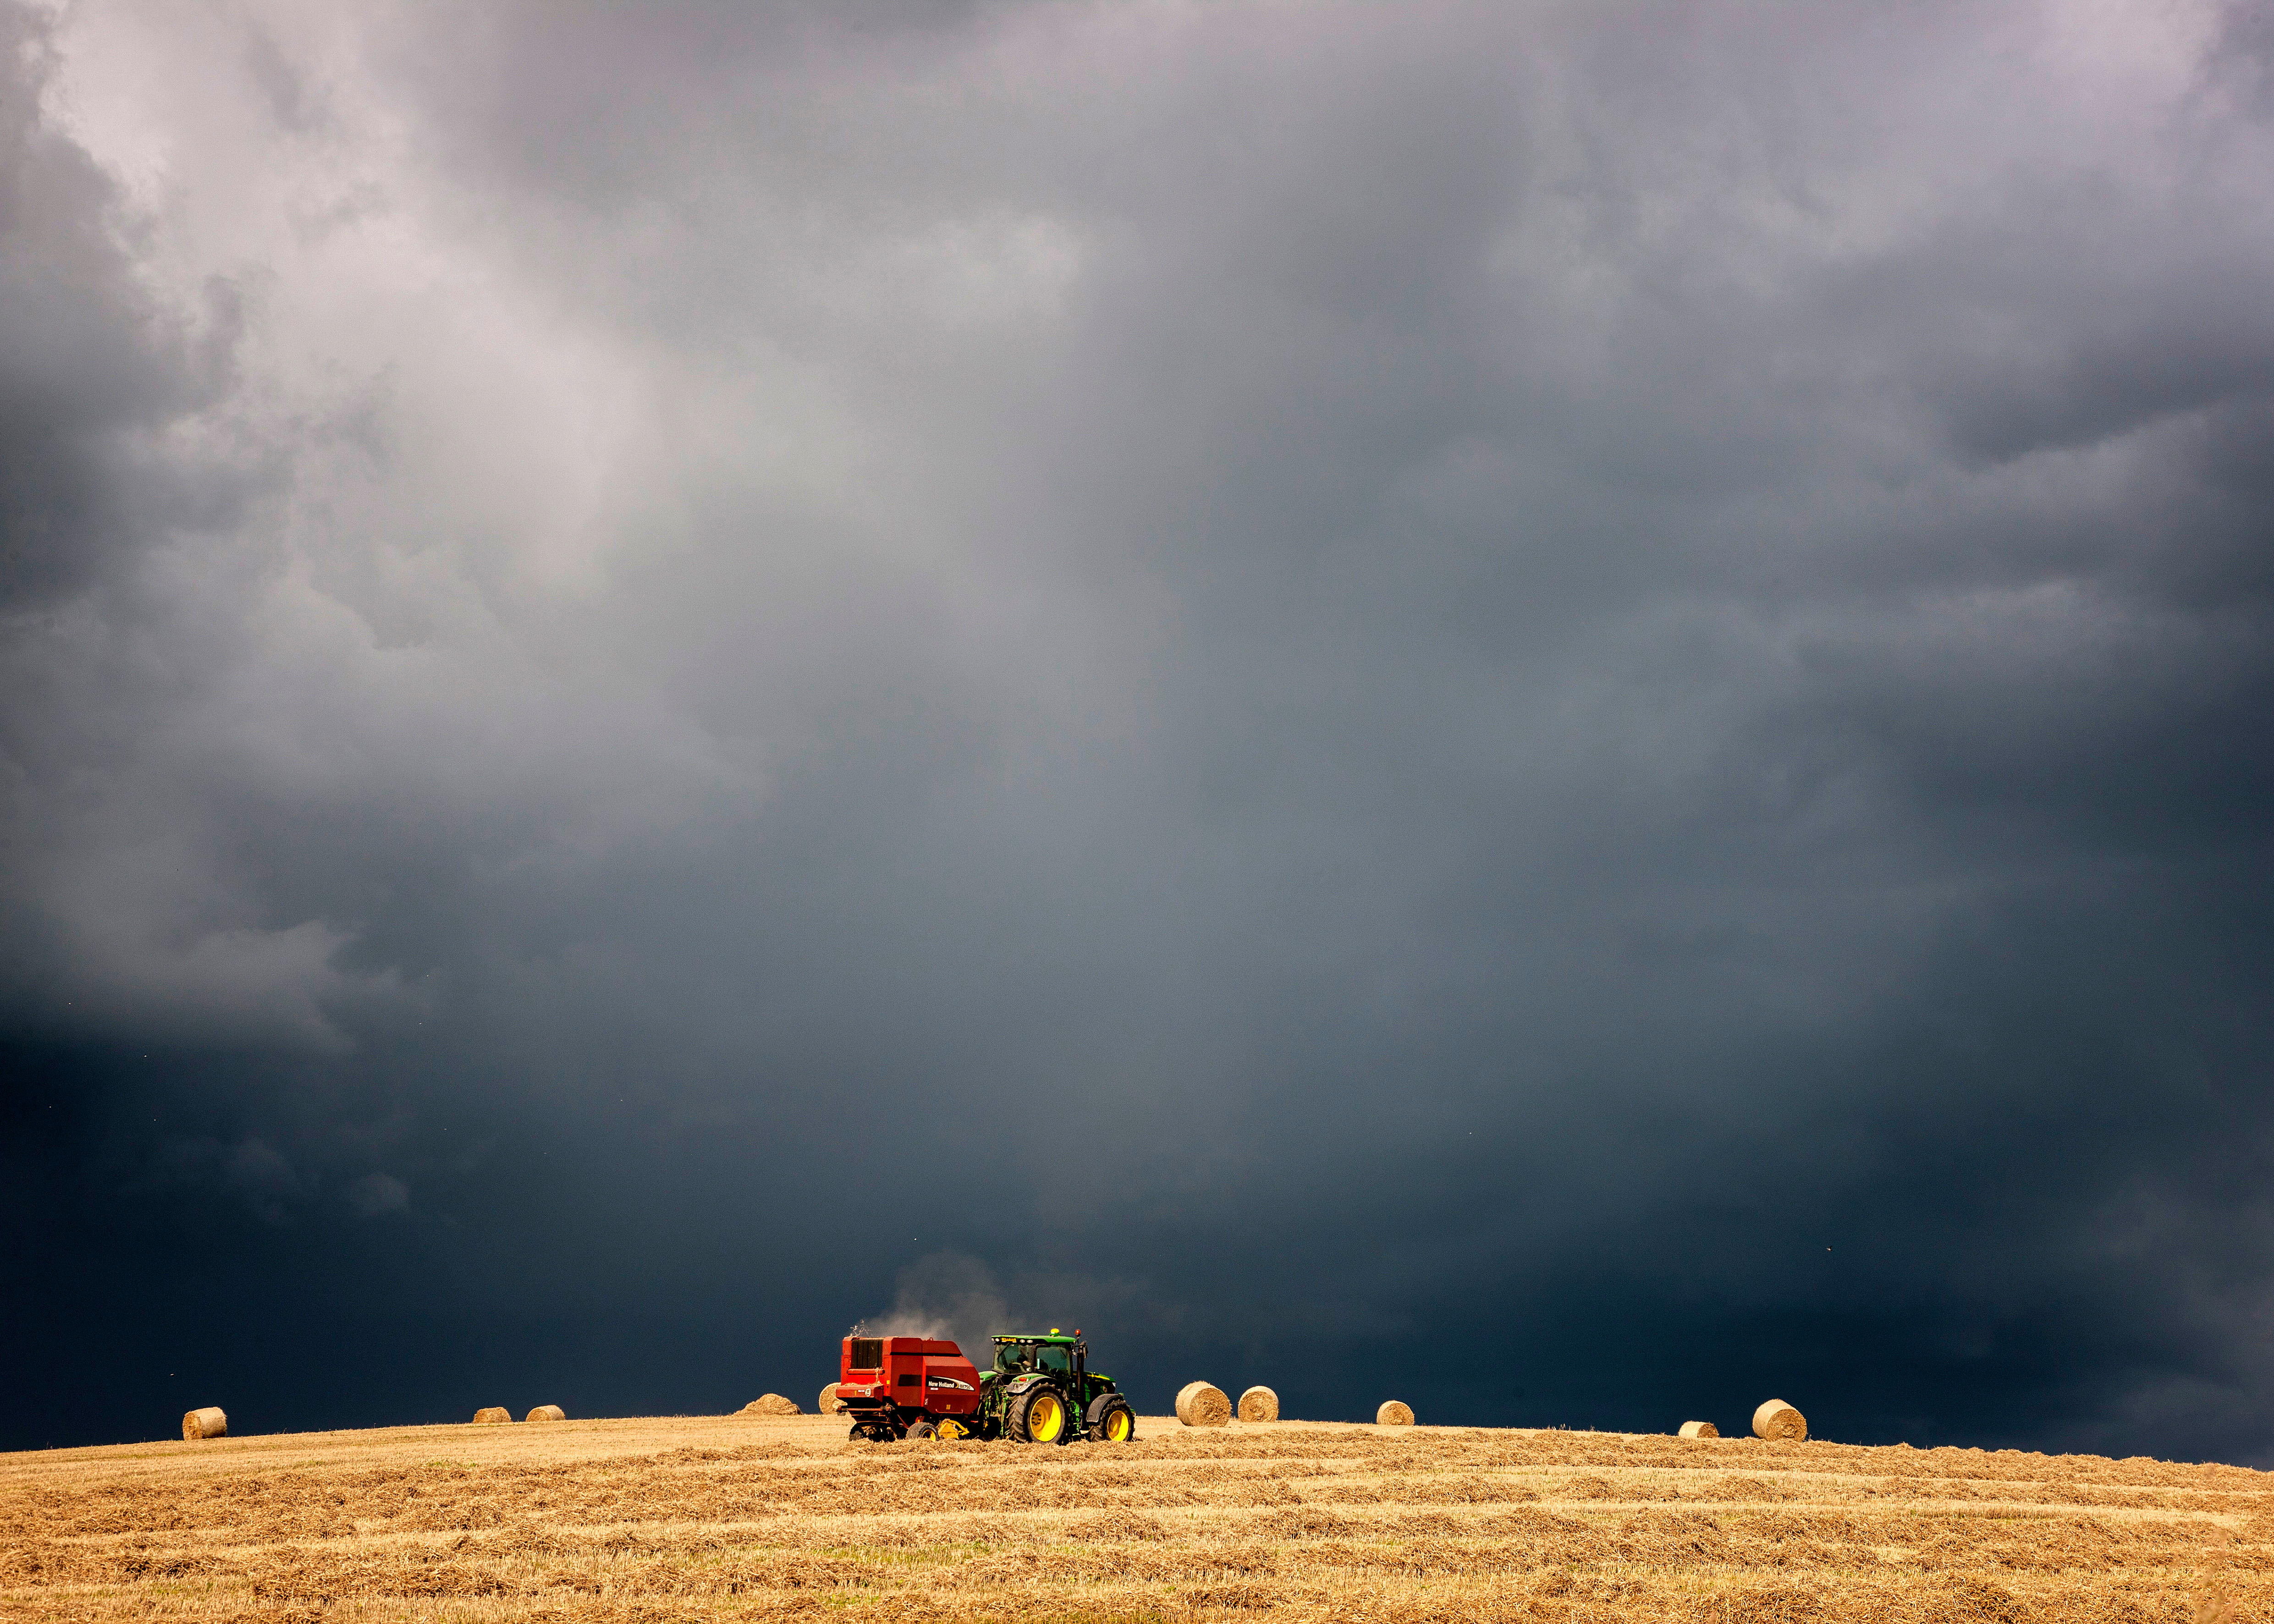 Country Life Today: British farmers want to lead the fight on climate change